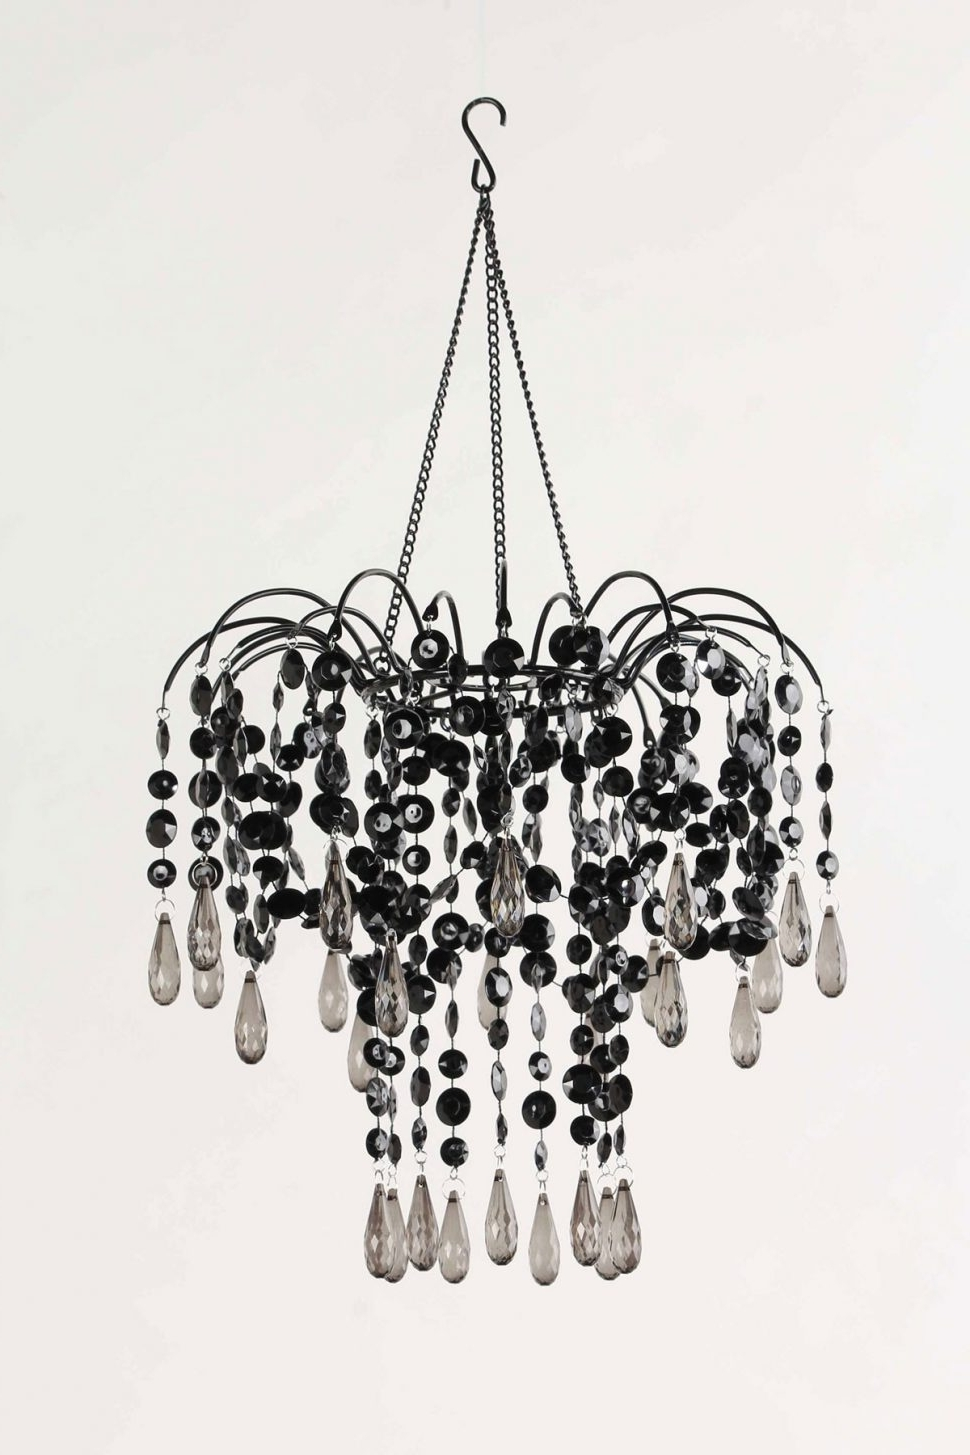 Popular Faux Crystal Chandeliers With Chandeliers : Faux Crystal Chandelier Up To Date Image Design (View 14 of 20)